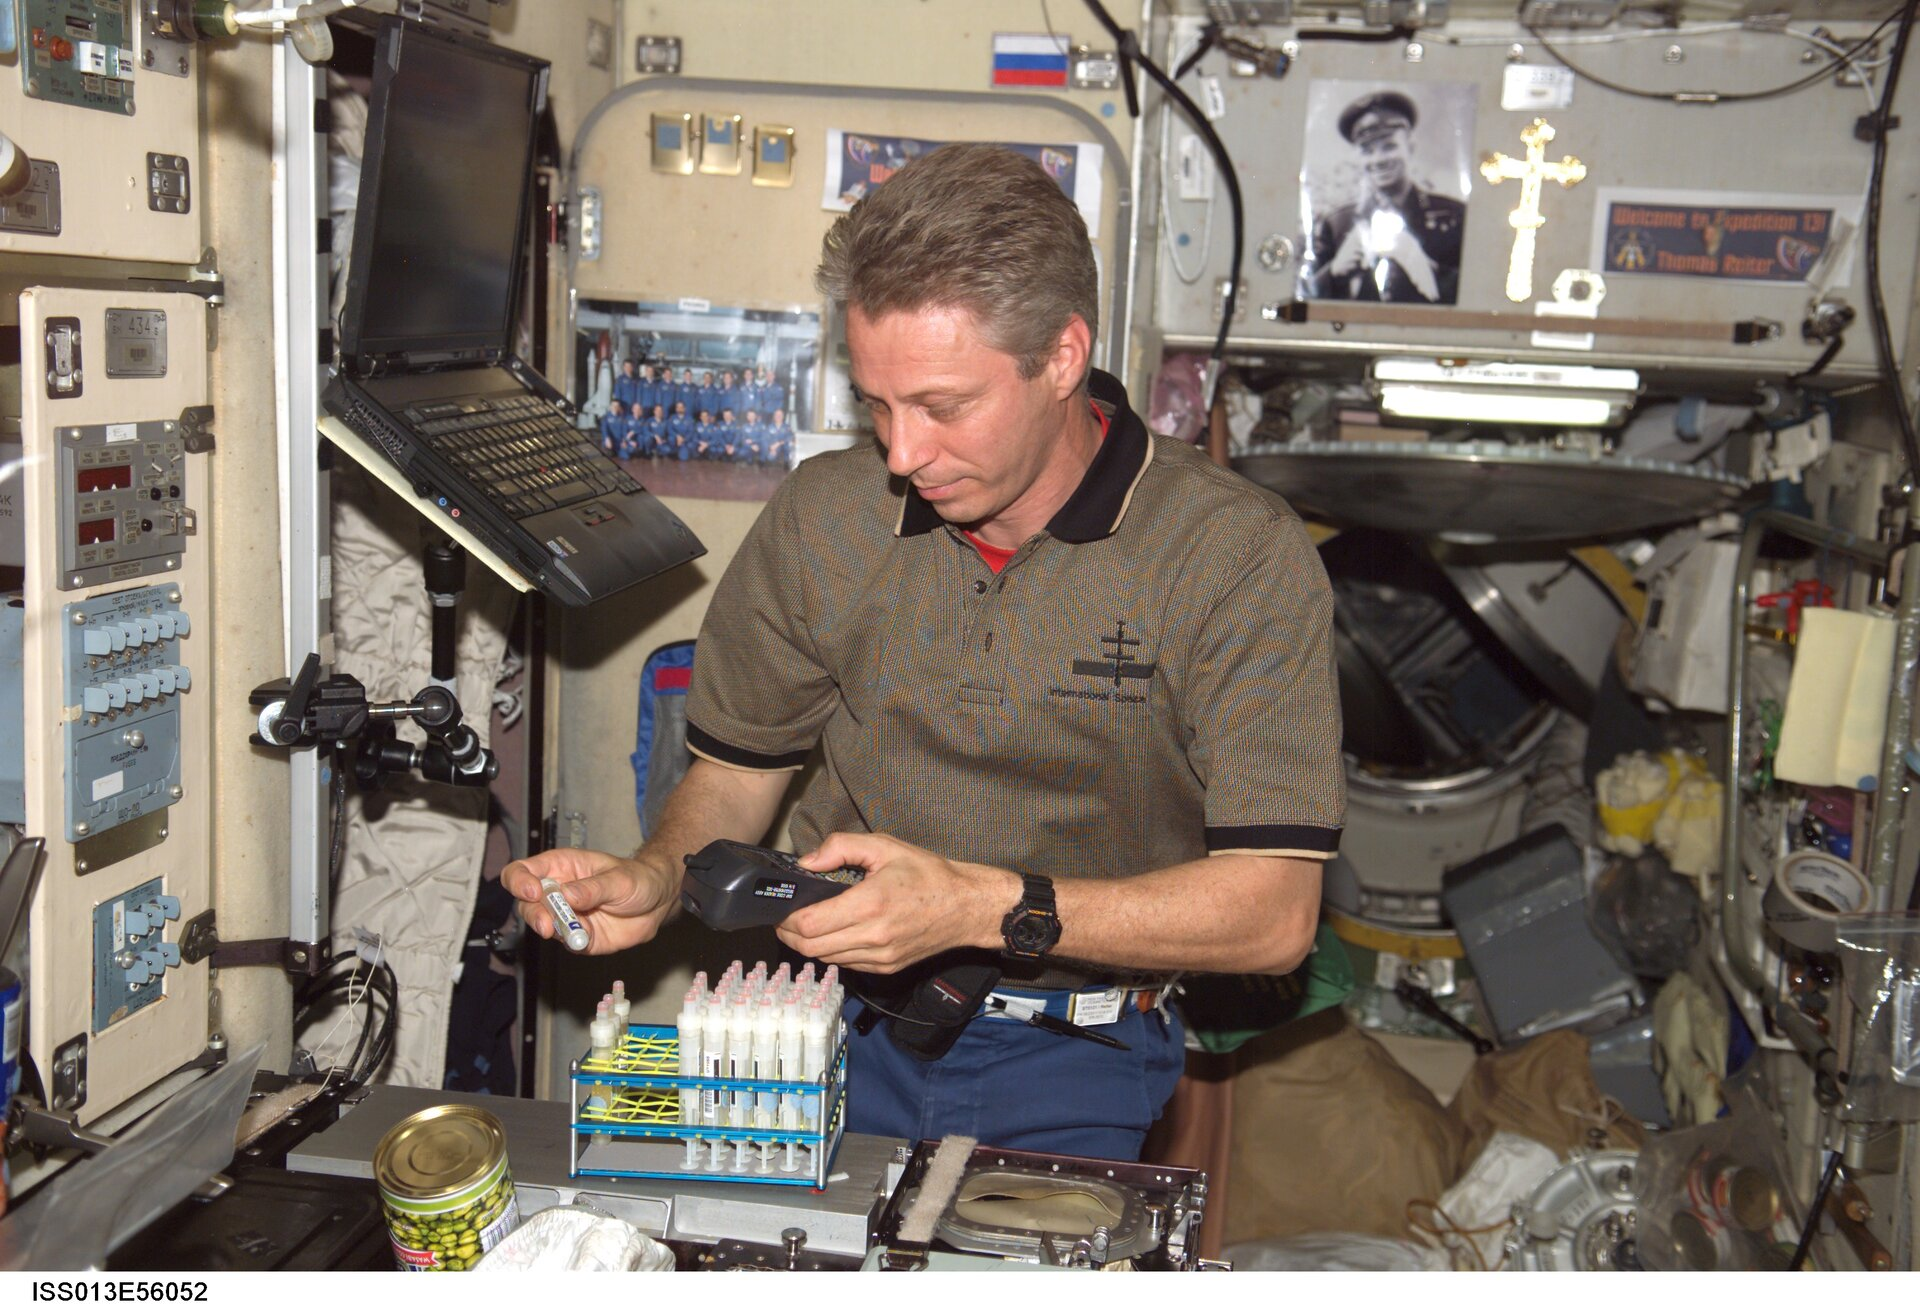 Thomas Reiter with experiment in the Zvezda module